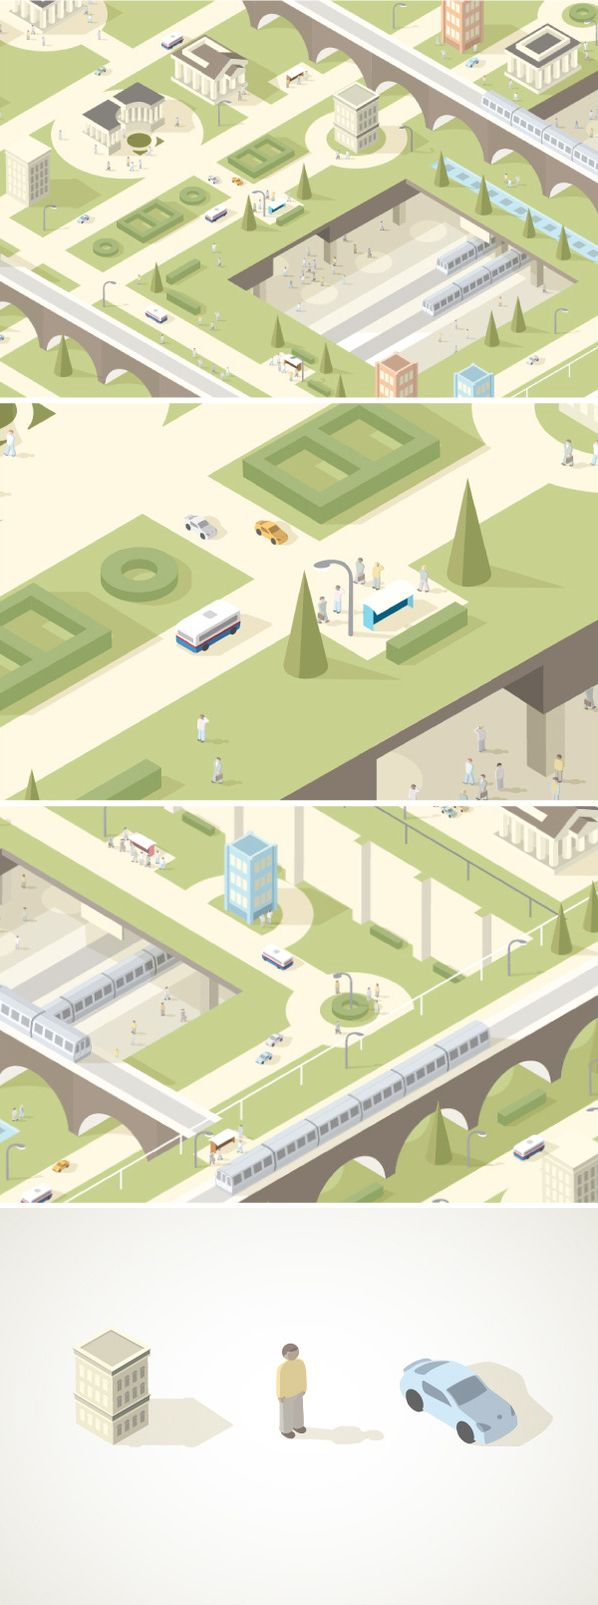 Isometric Illustration by Jonathan Patterson (via Creattica)